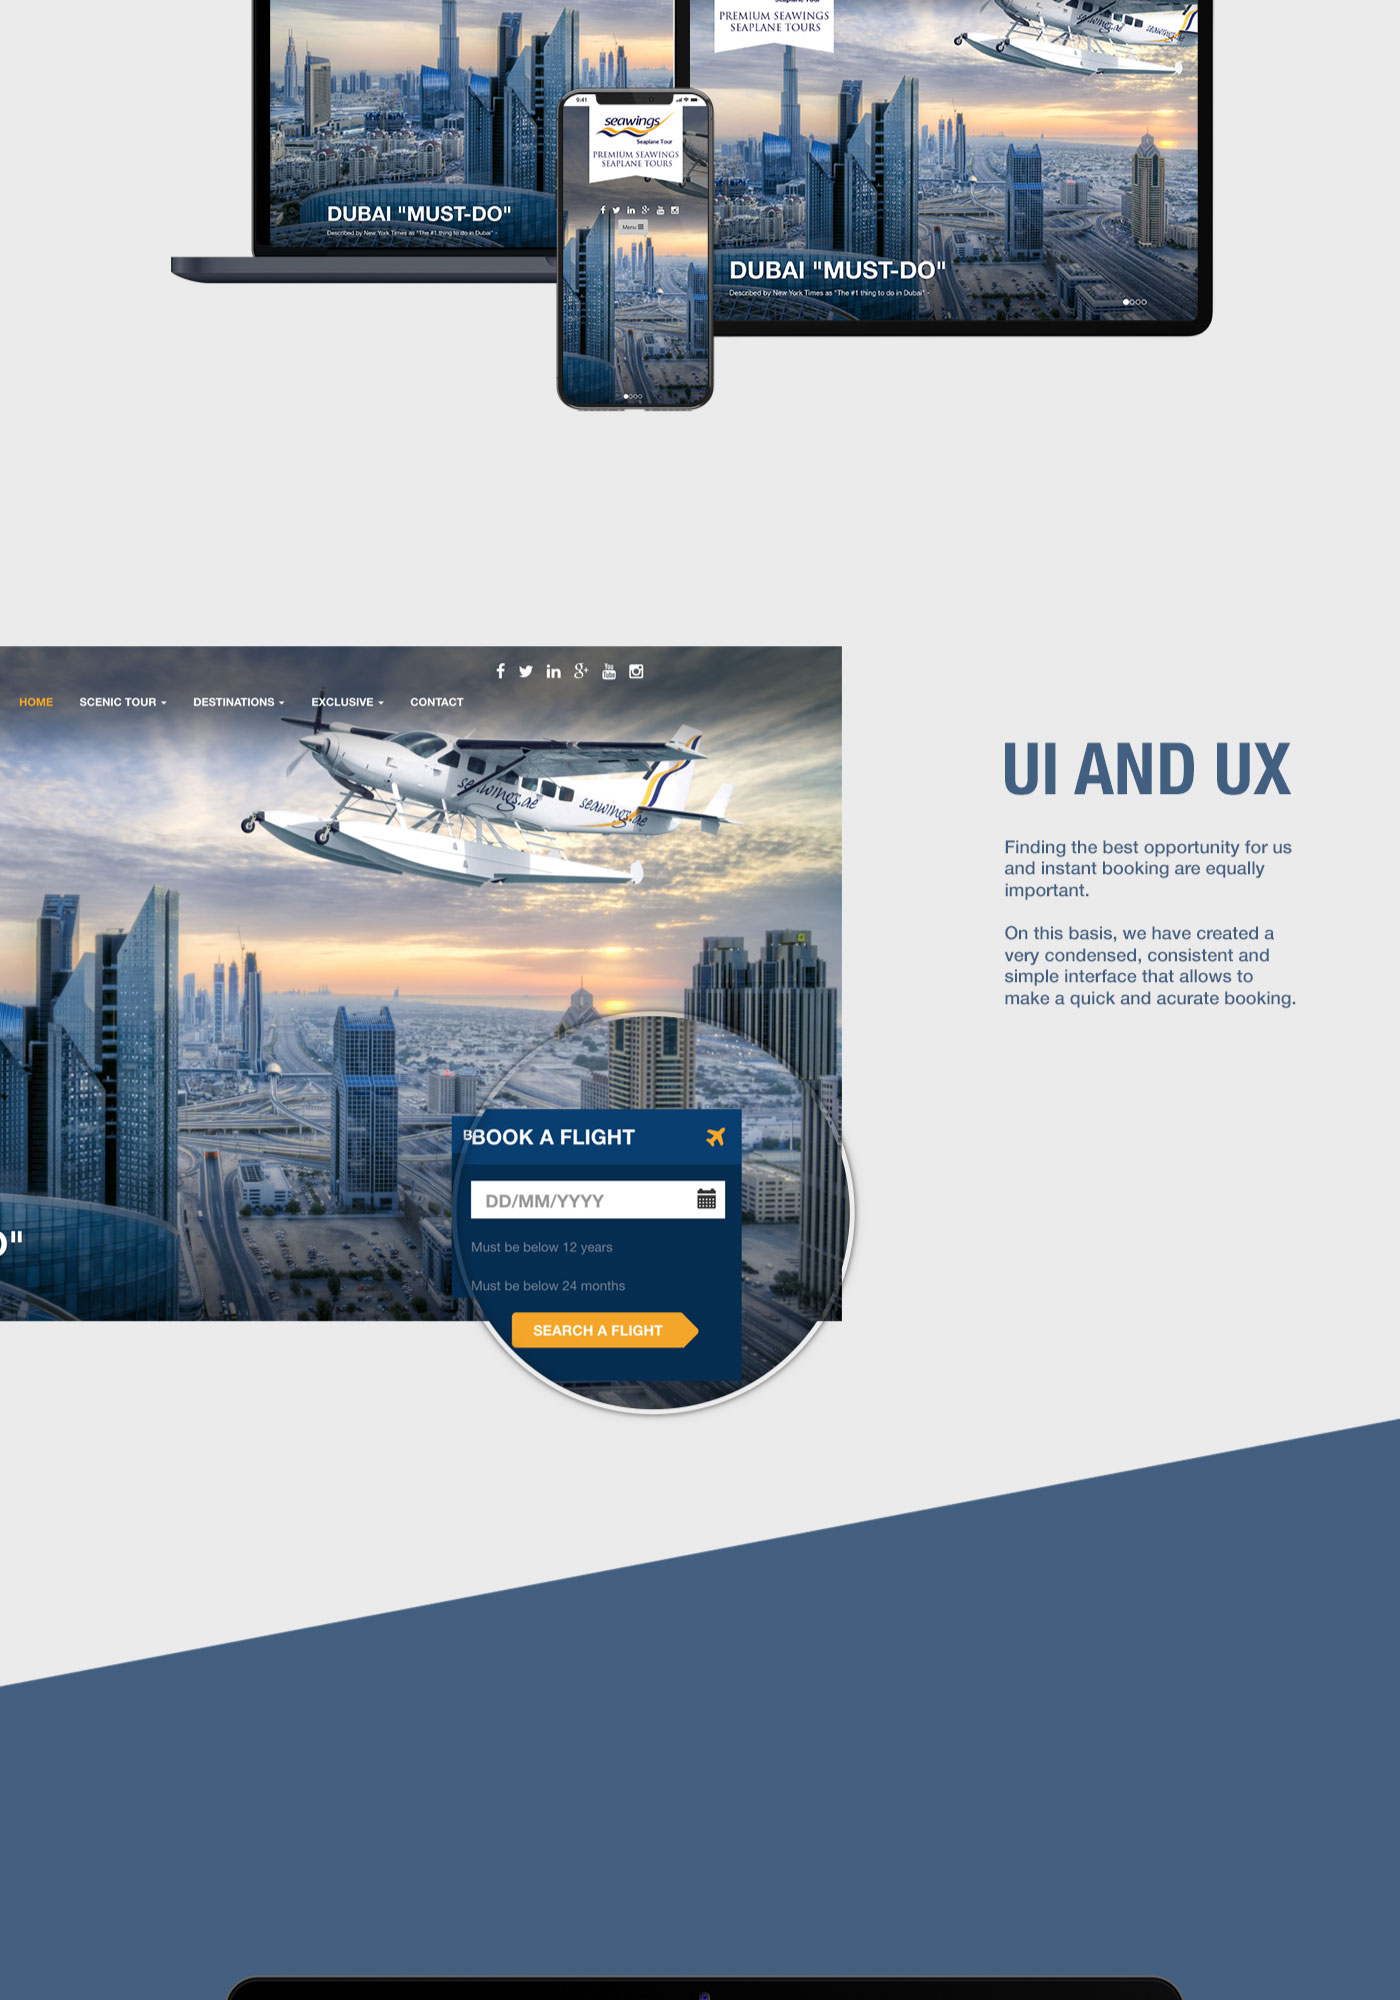 Seawings Seaplane Tours user interface and user experience importance